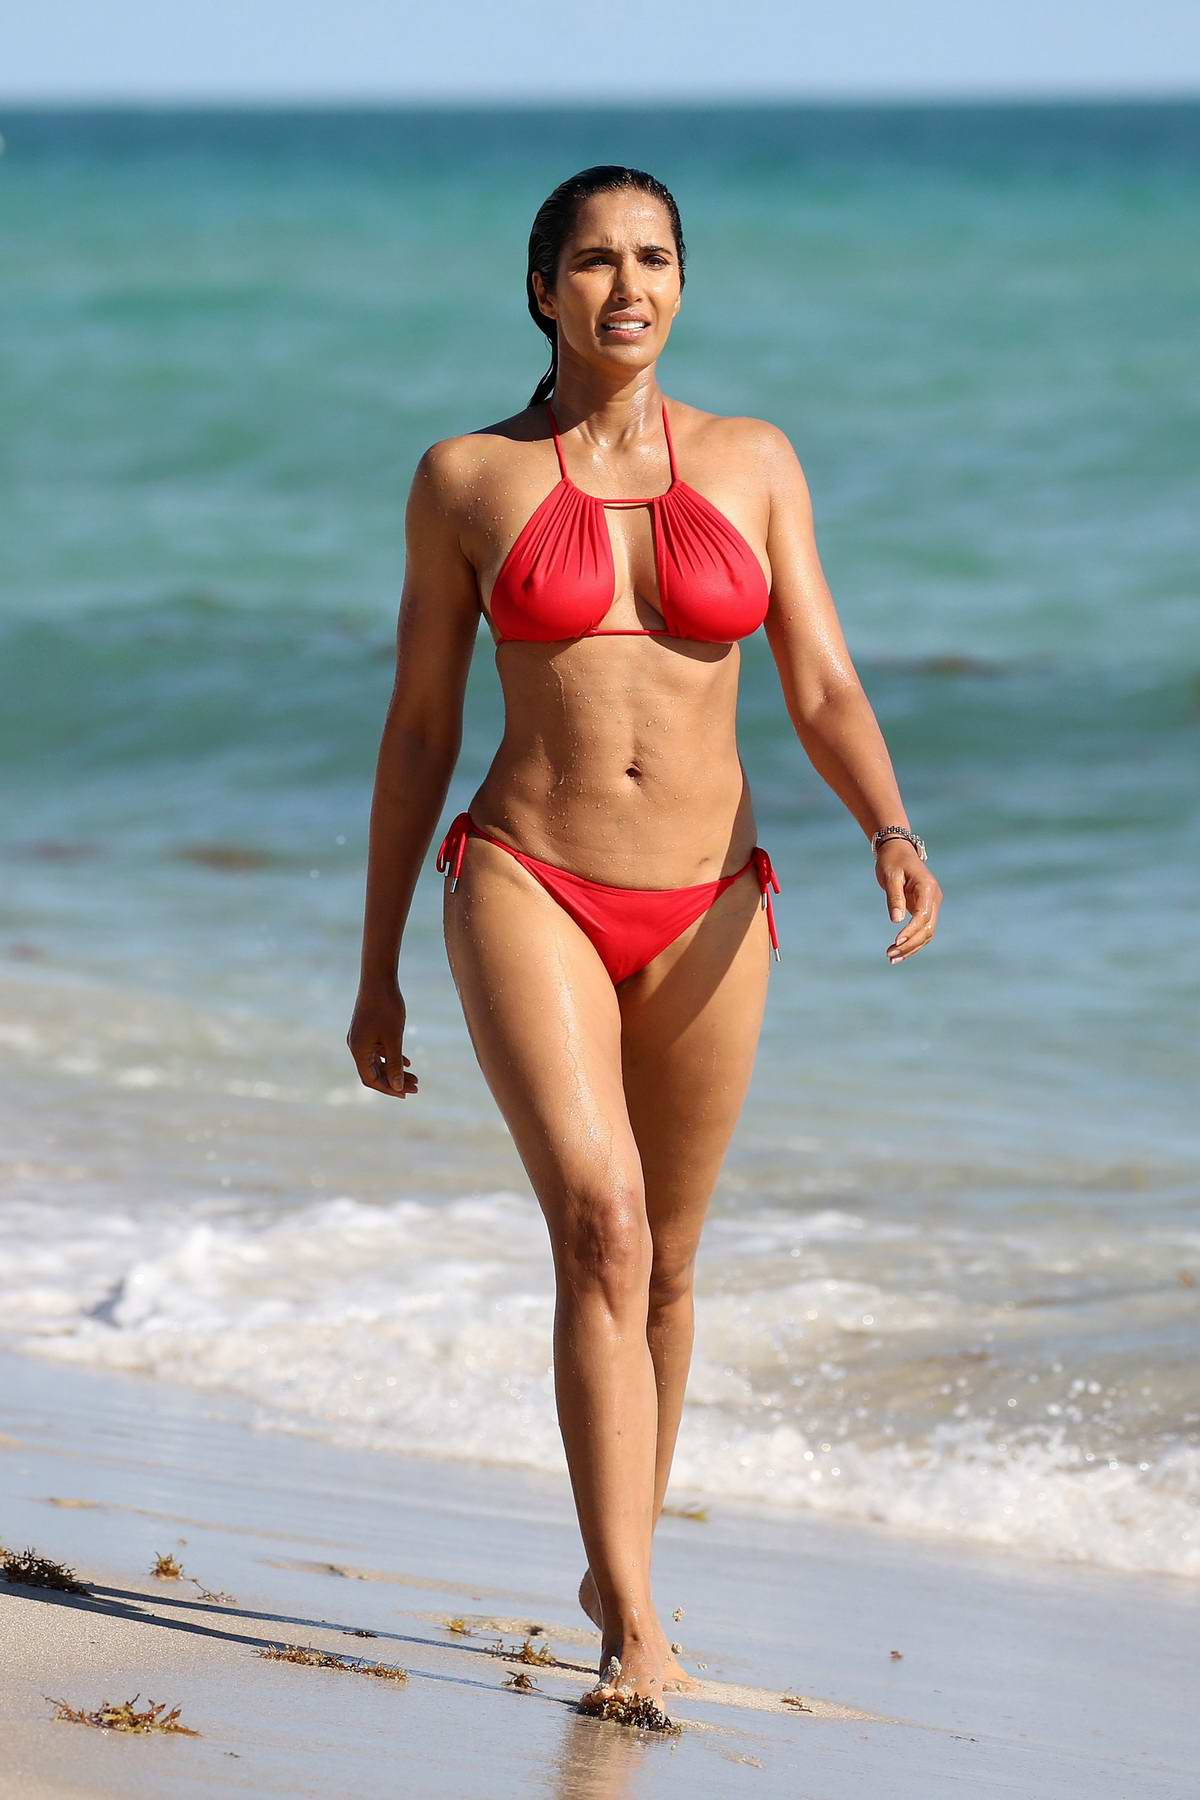 Padma Lakshmi sizzles in a red bikini as she hits the beach in Miami, Florida